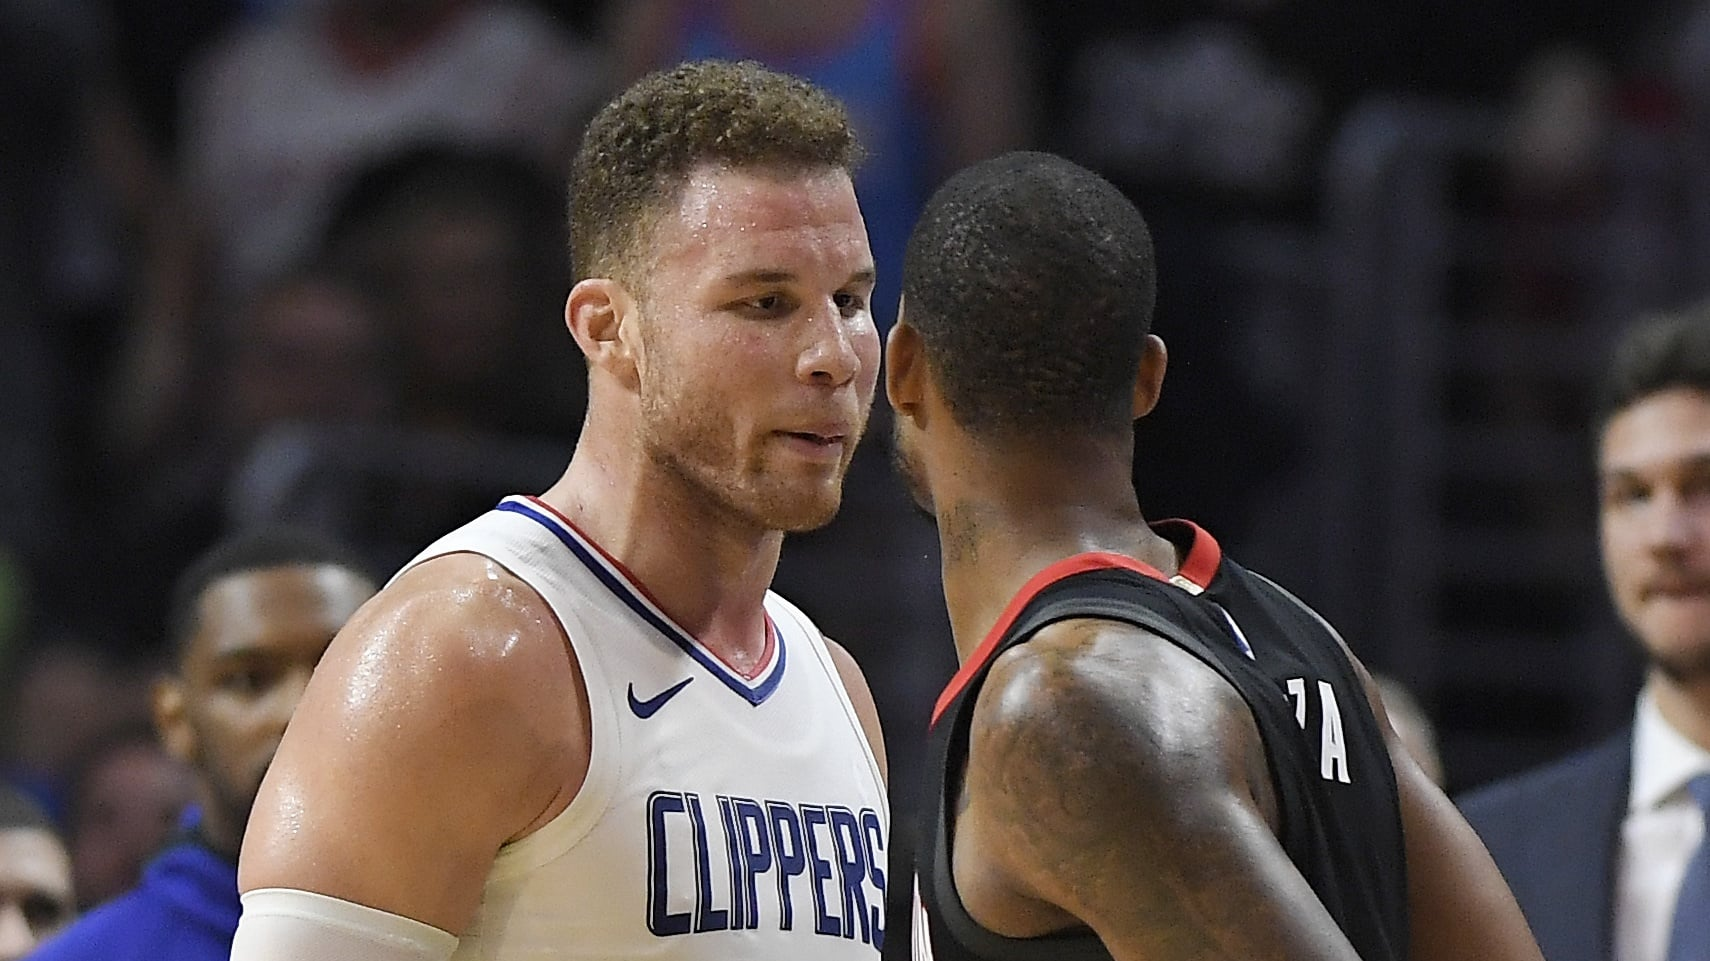 James Harden, Chris Paul confront Clippers in lockerroom through secret door